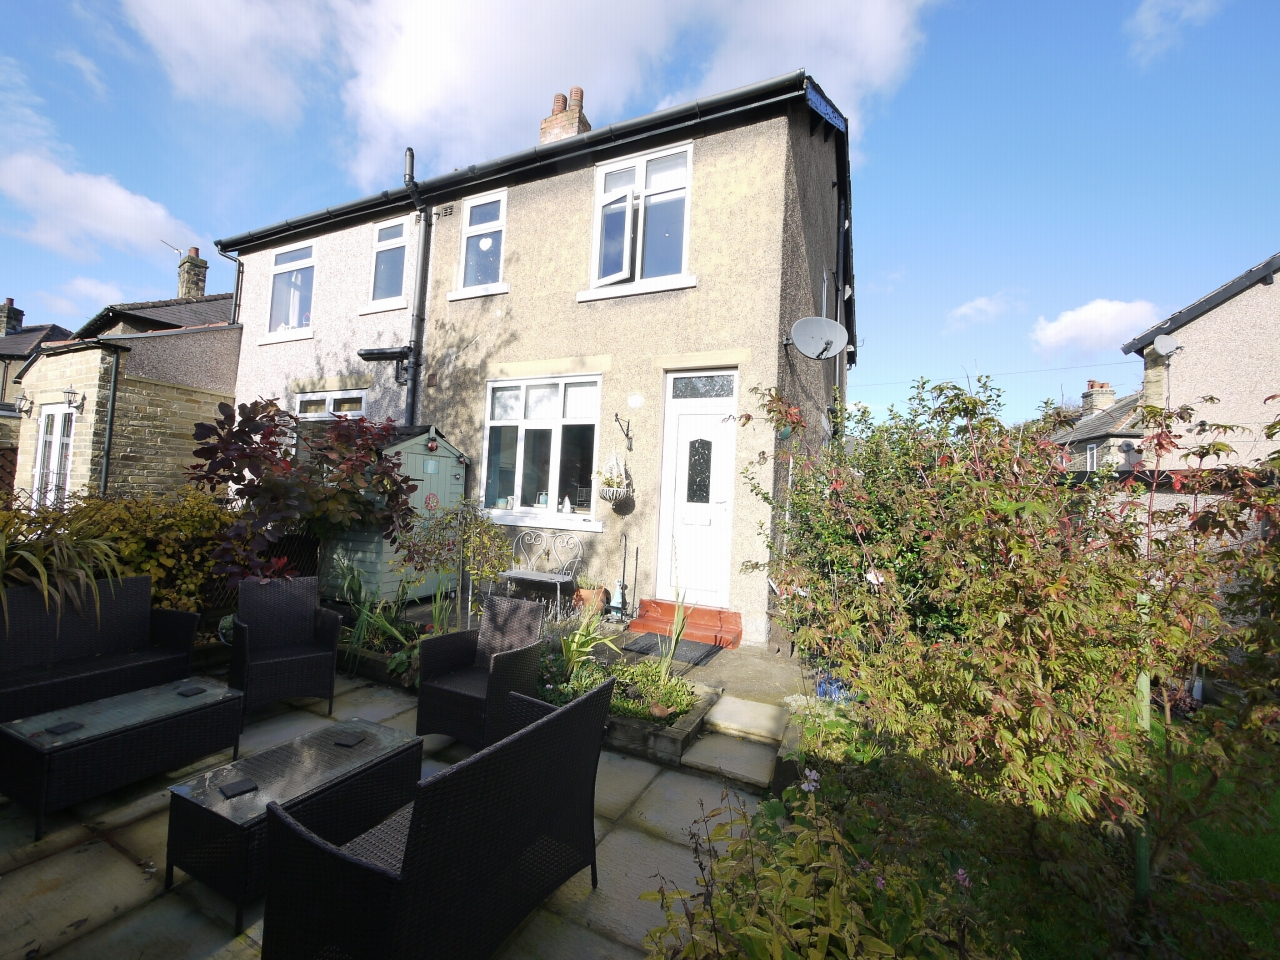 3 bedroom semi-detached house SSTC in Brighouse - Photograph 11.